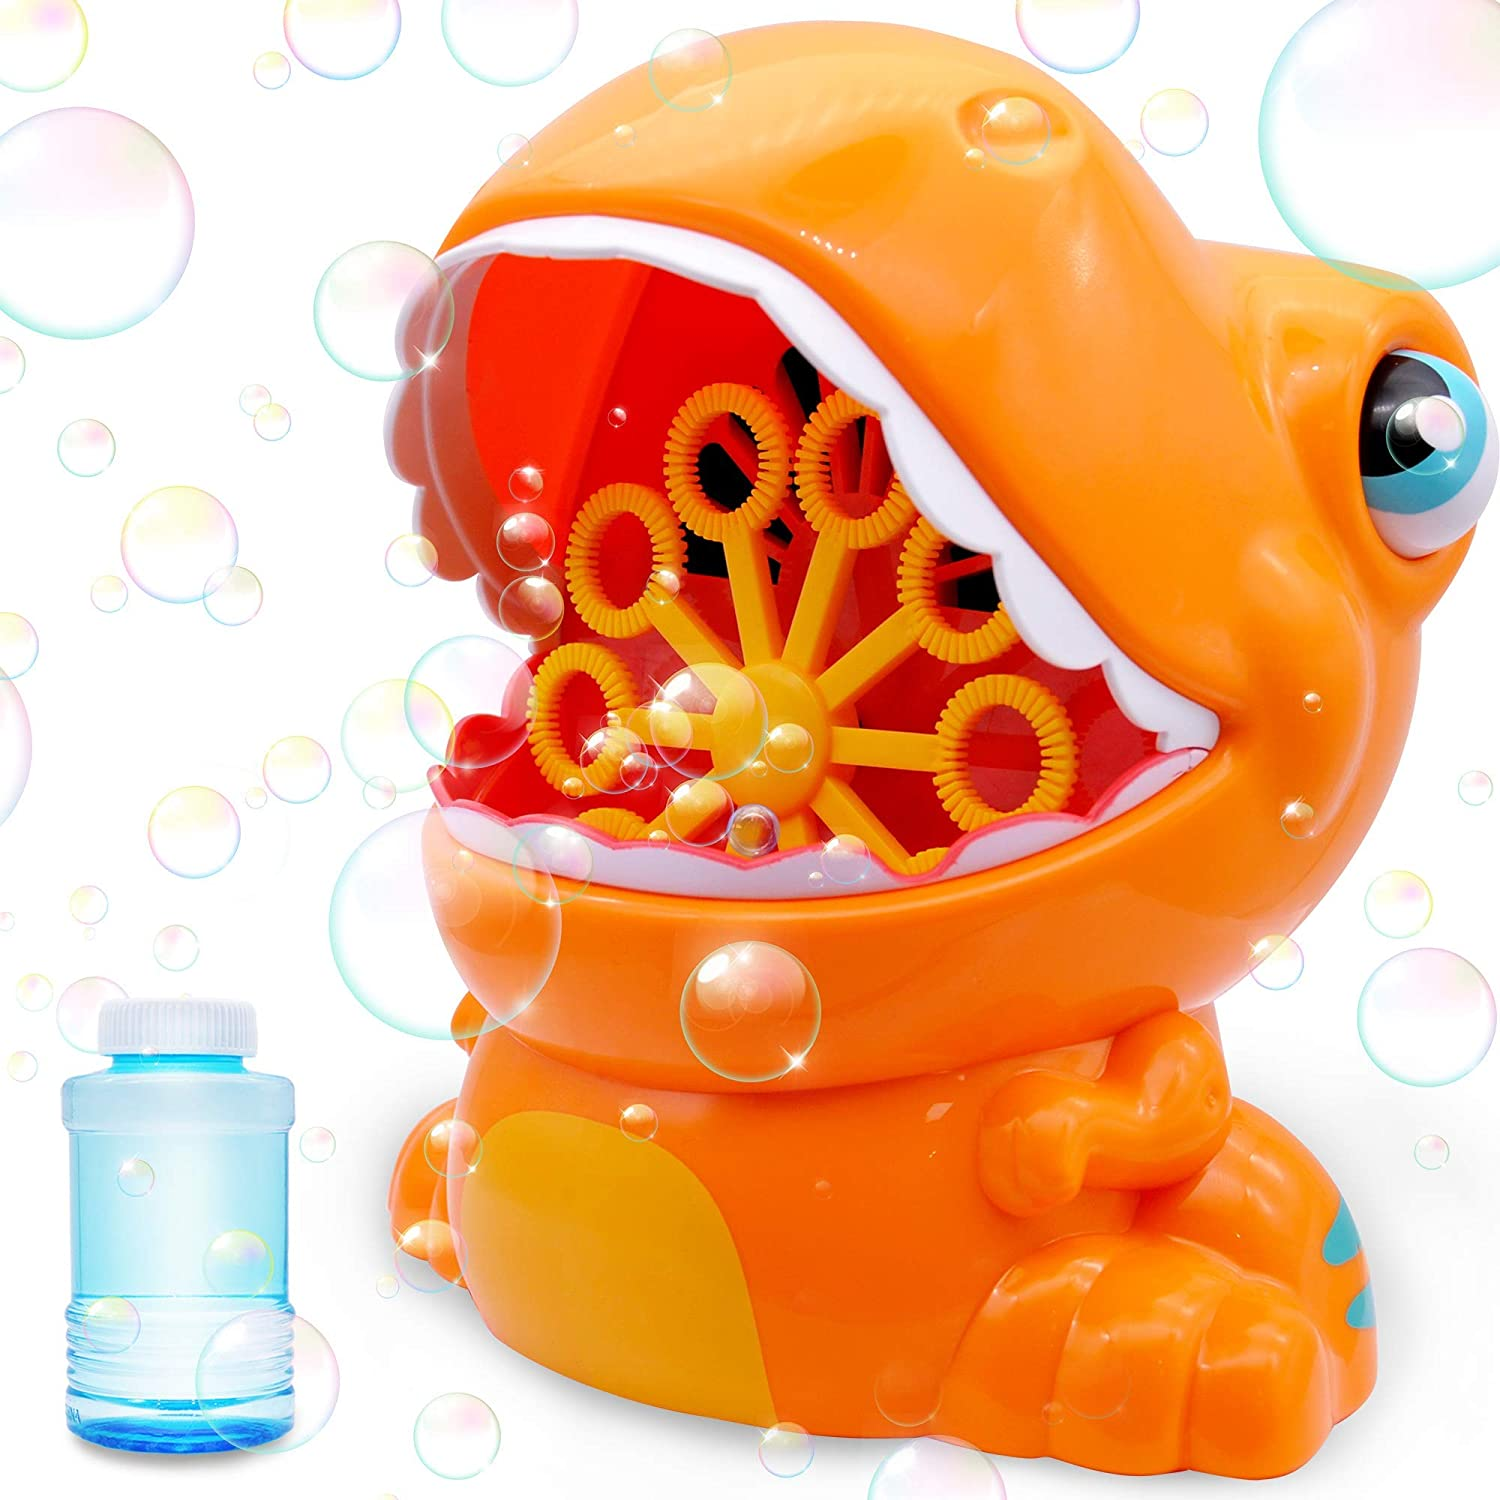 JOYIN Orange Bubble Machine Blower Bubble Maker 1000+ Bubble Per Minute for Kids, Summer Toy, Party Favor,Birthday, Outdoor, Indoor, and Easter with 2 Bubble Solutions